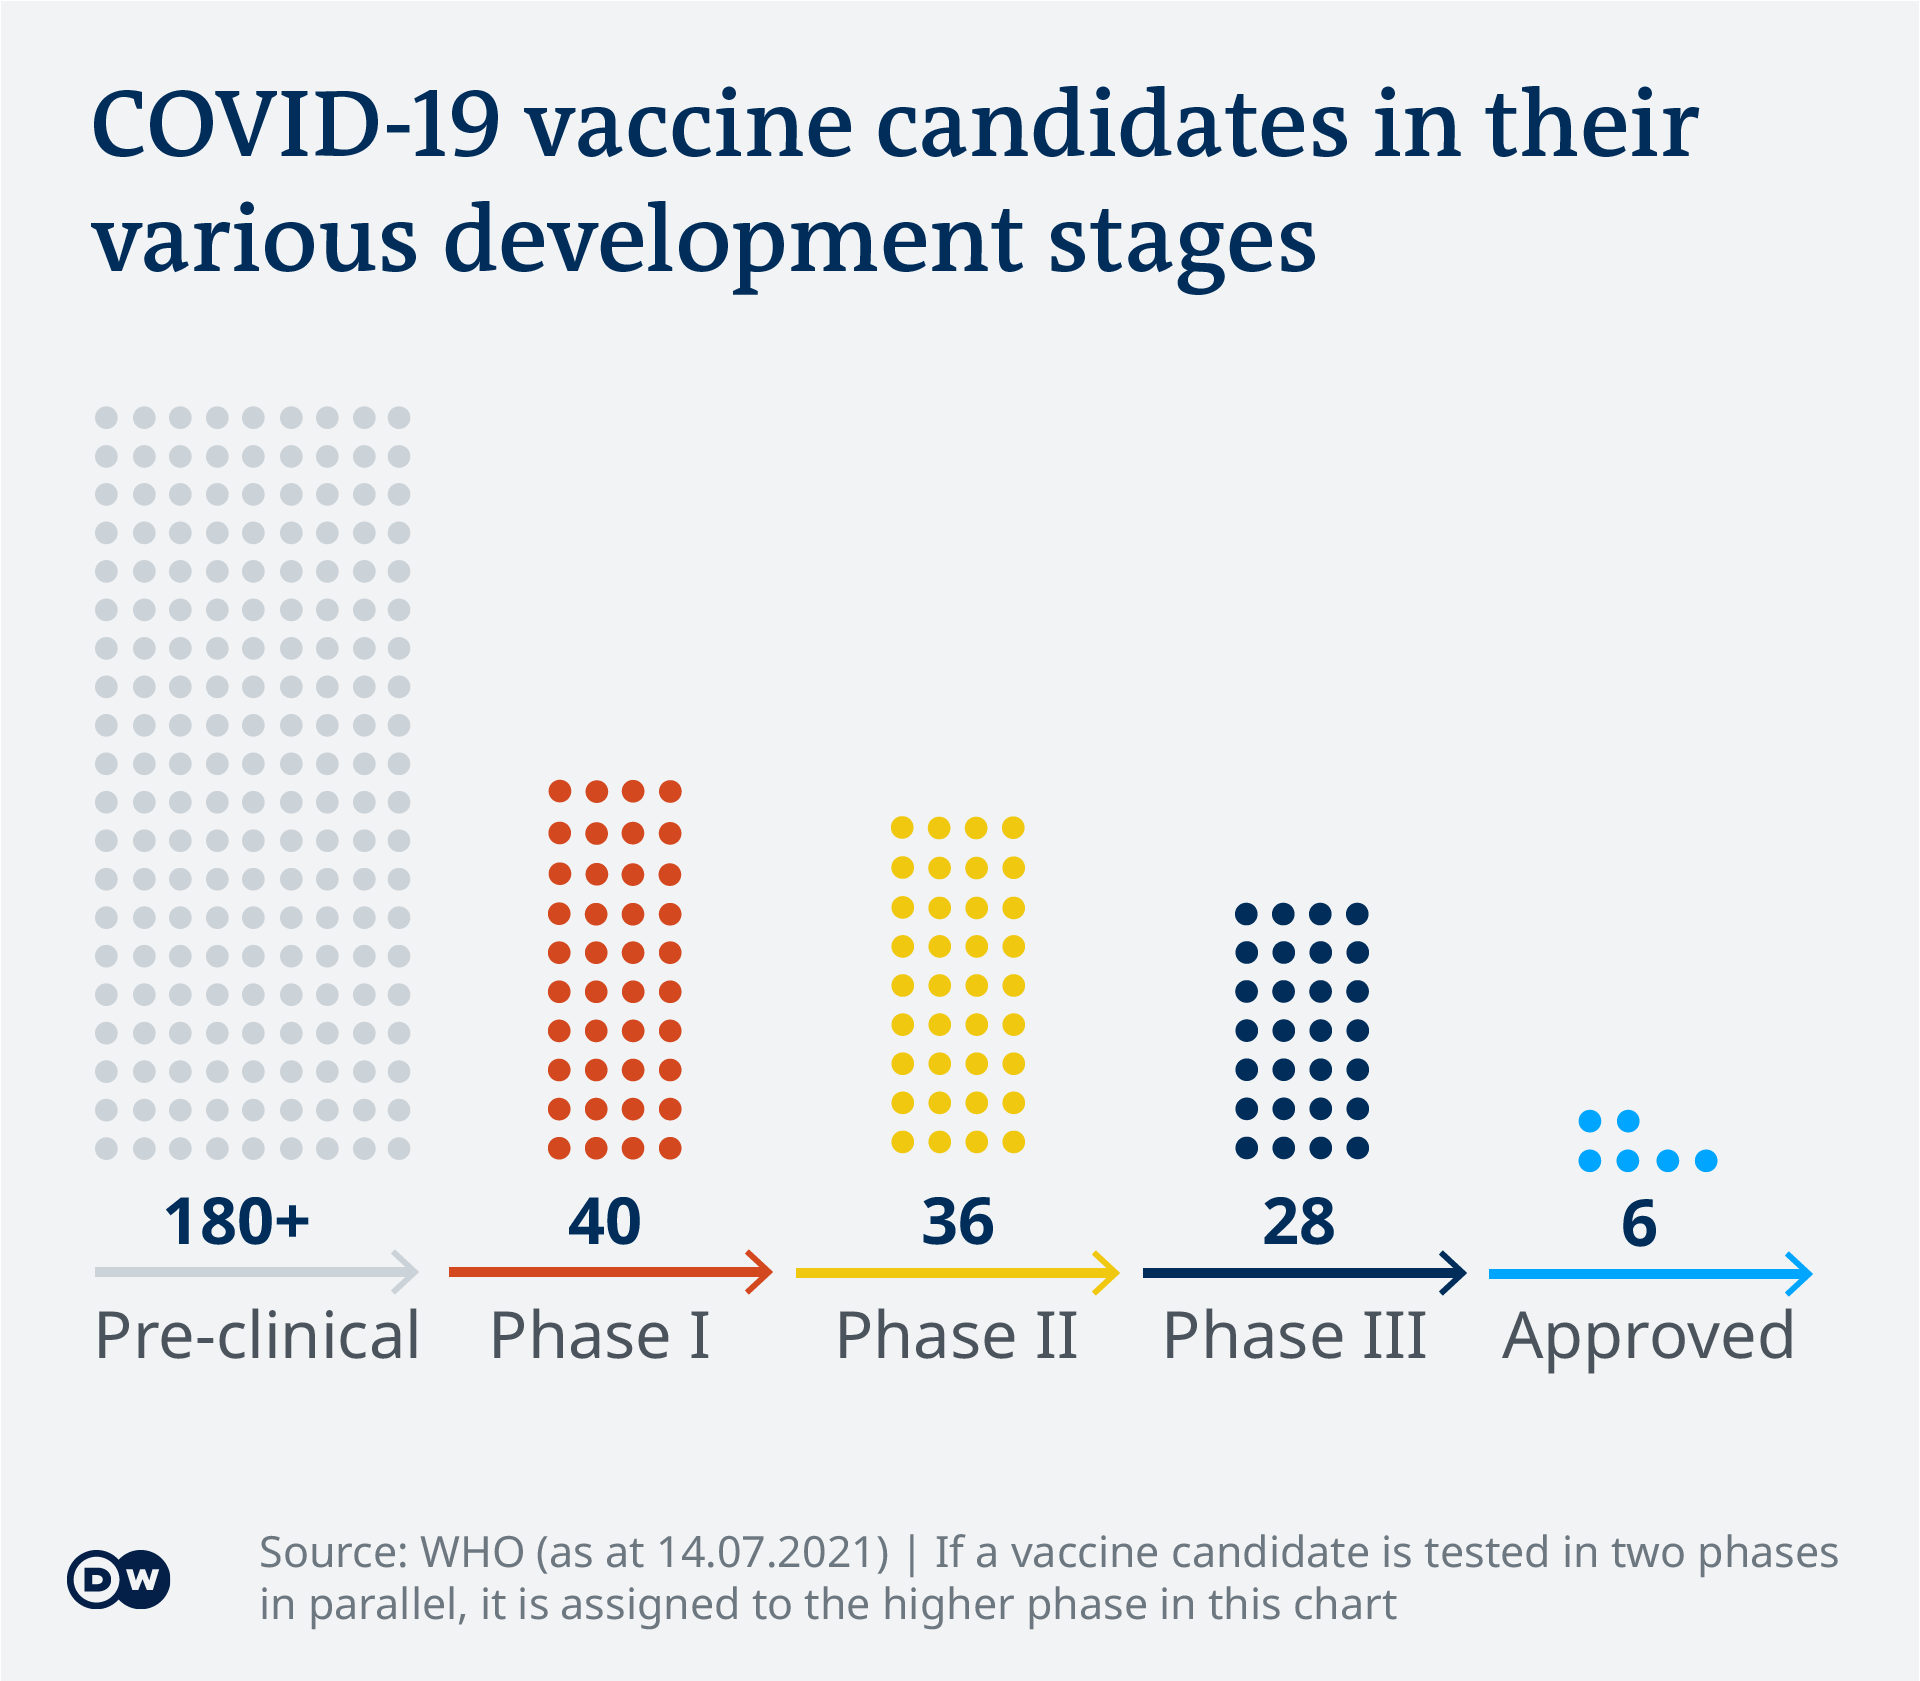 Data visualization - COVID-19 vaccine tracker - Vaccines by development phase - Update July 15, 2021 - English